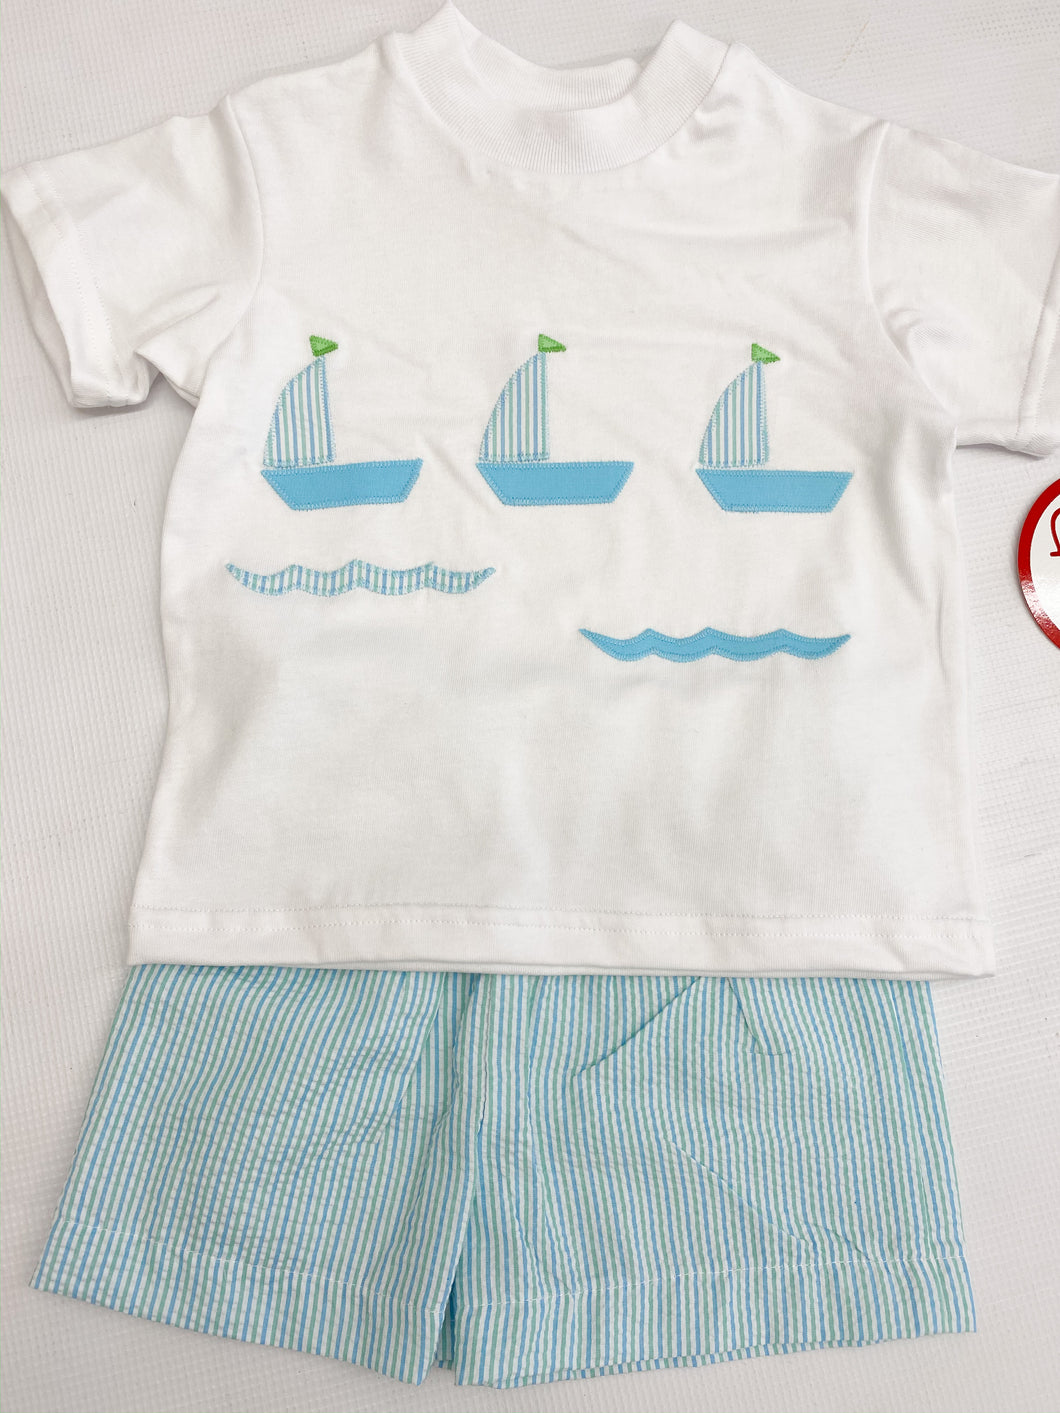 Blue/Green Sailboat Short Set